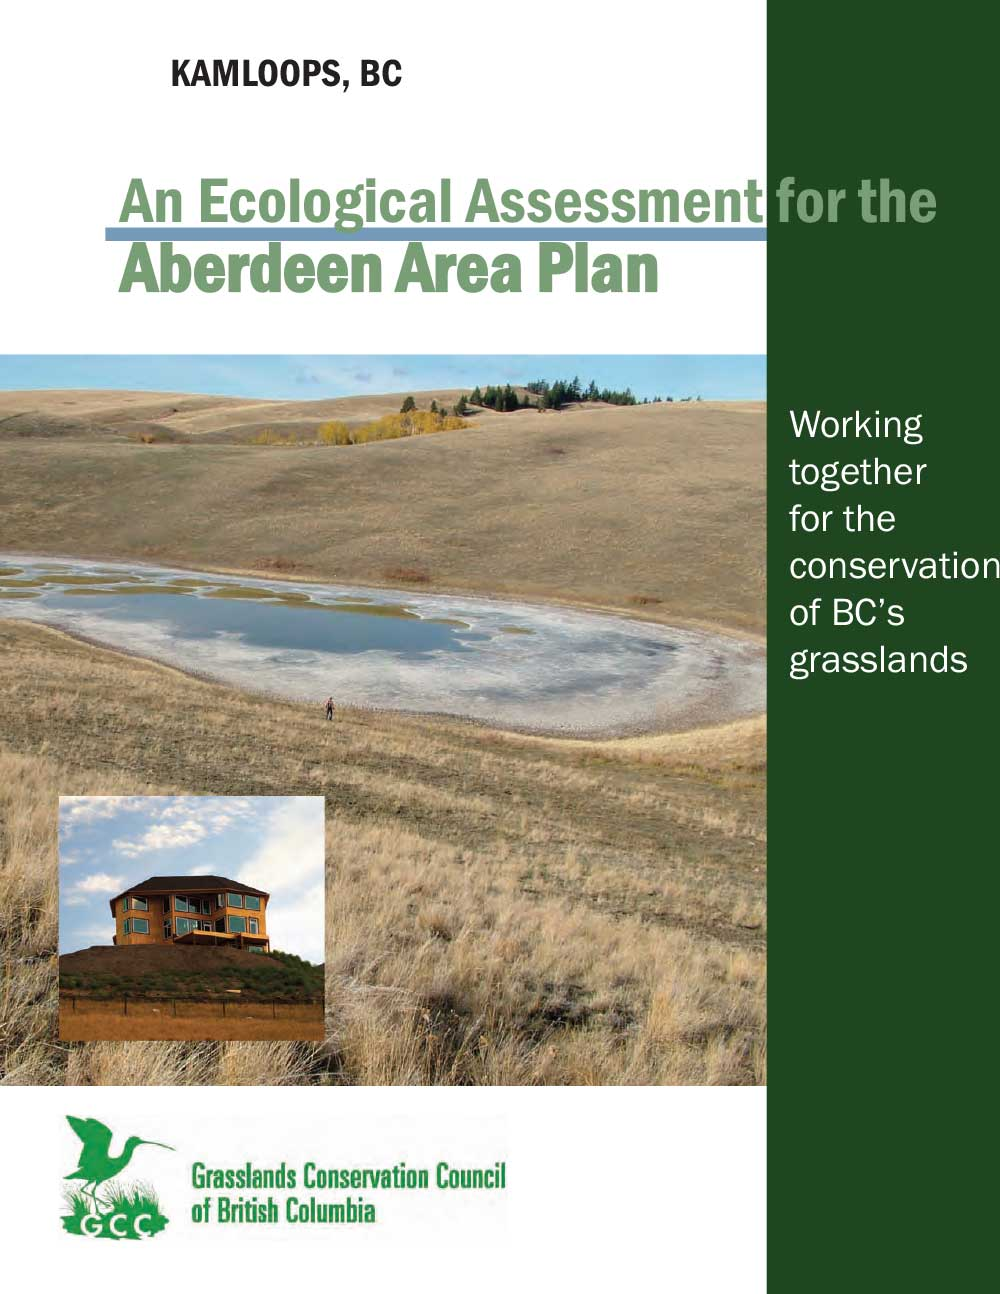 BC Grasslands - An Ecological Assessment for the Aberdeen Area Plan